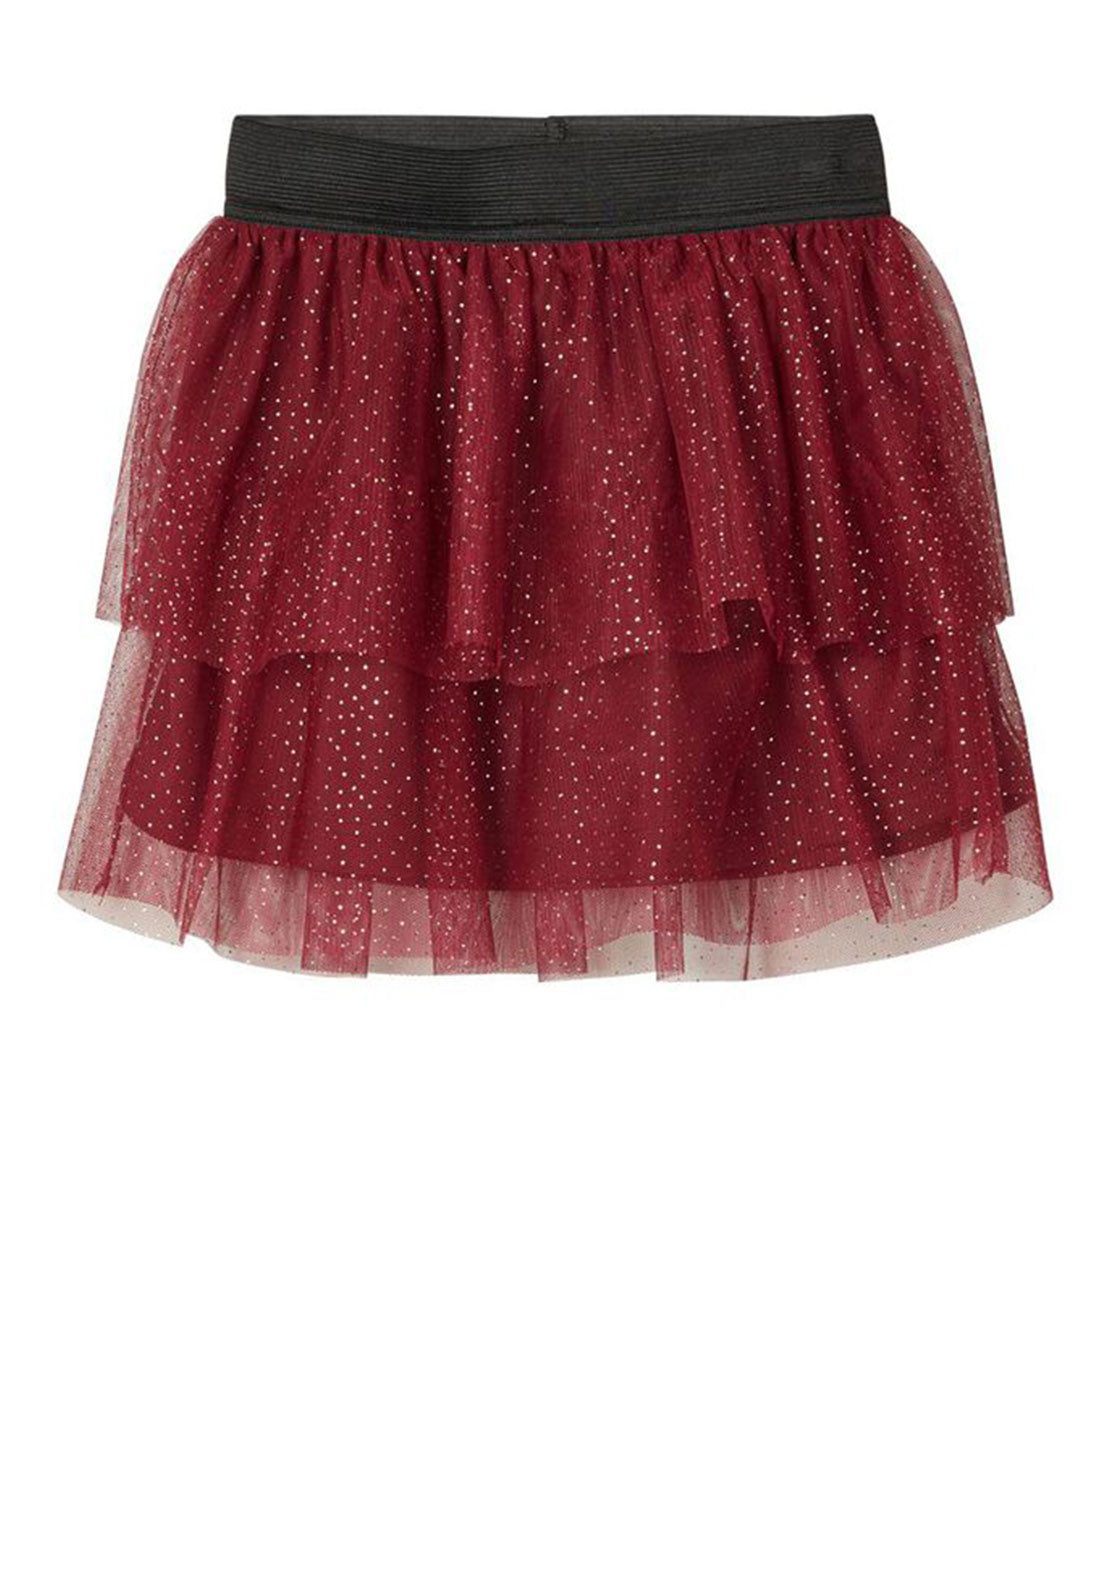 Name It Mini Girls Fritty Dotted Tulle Skirt, Wine